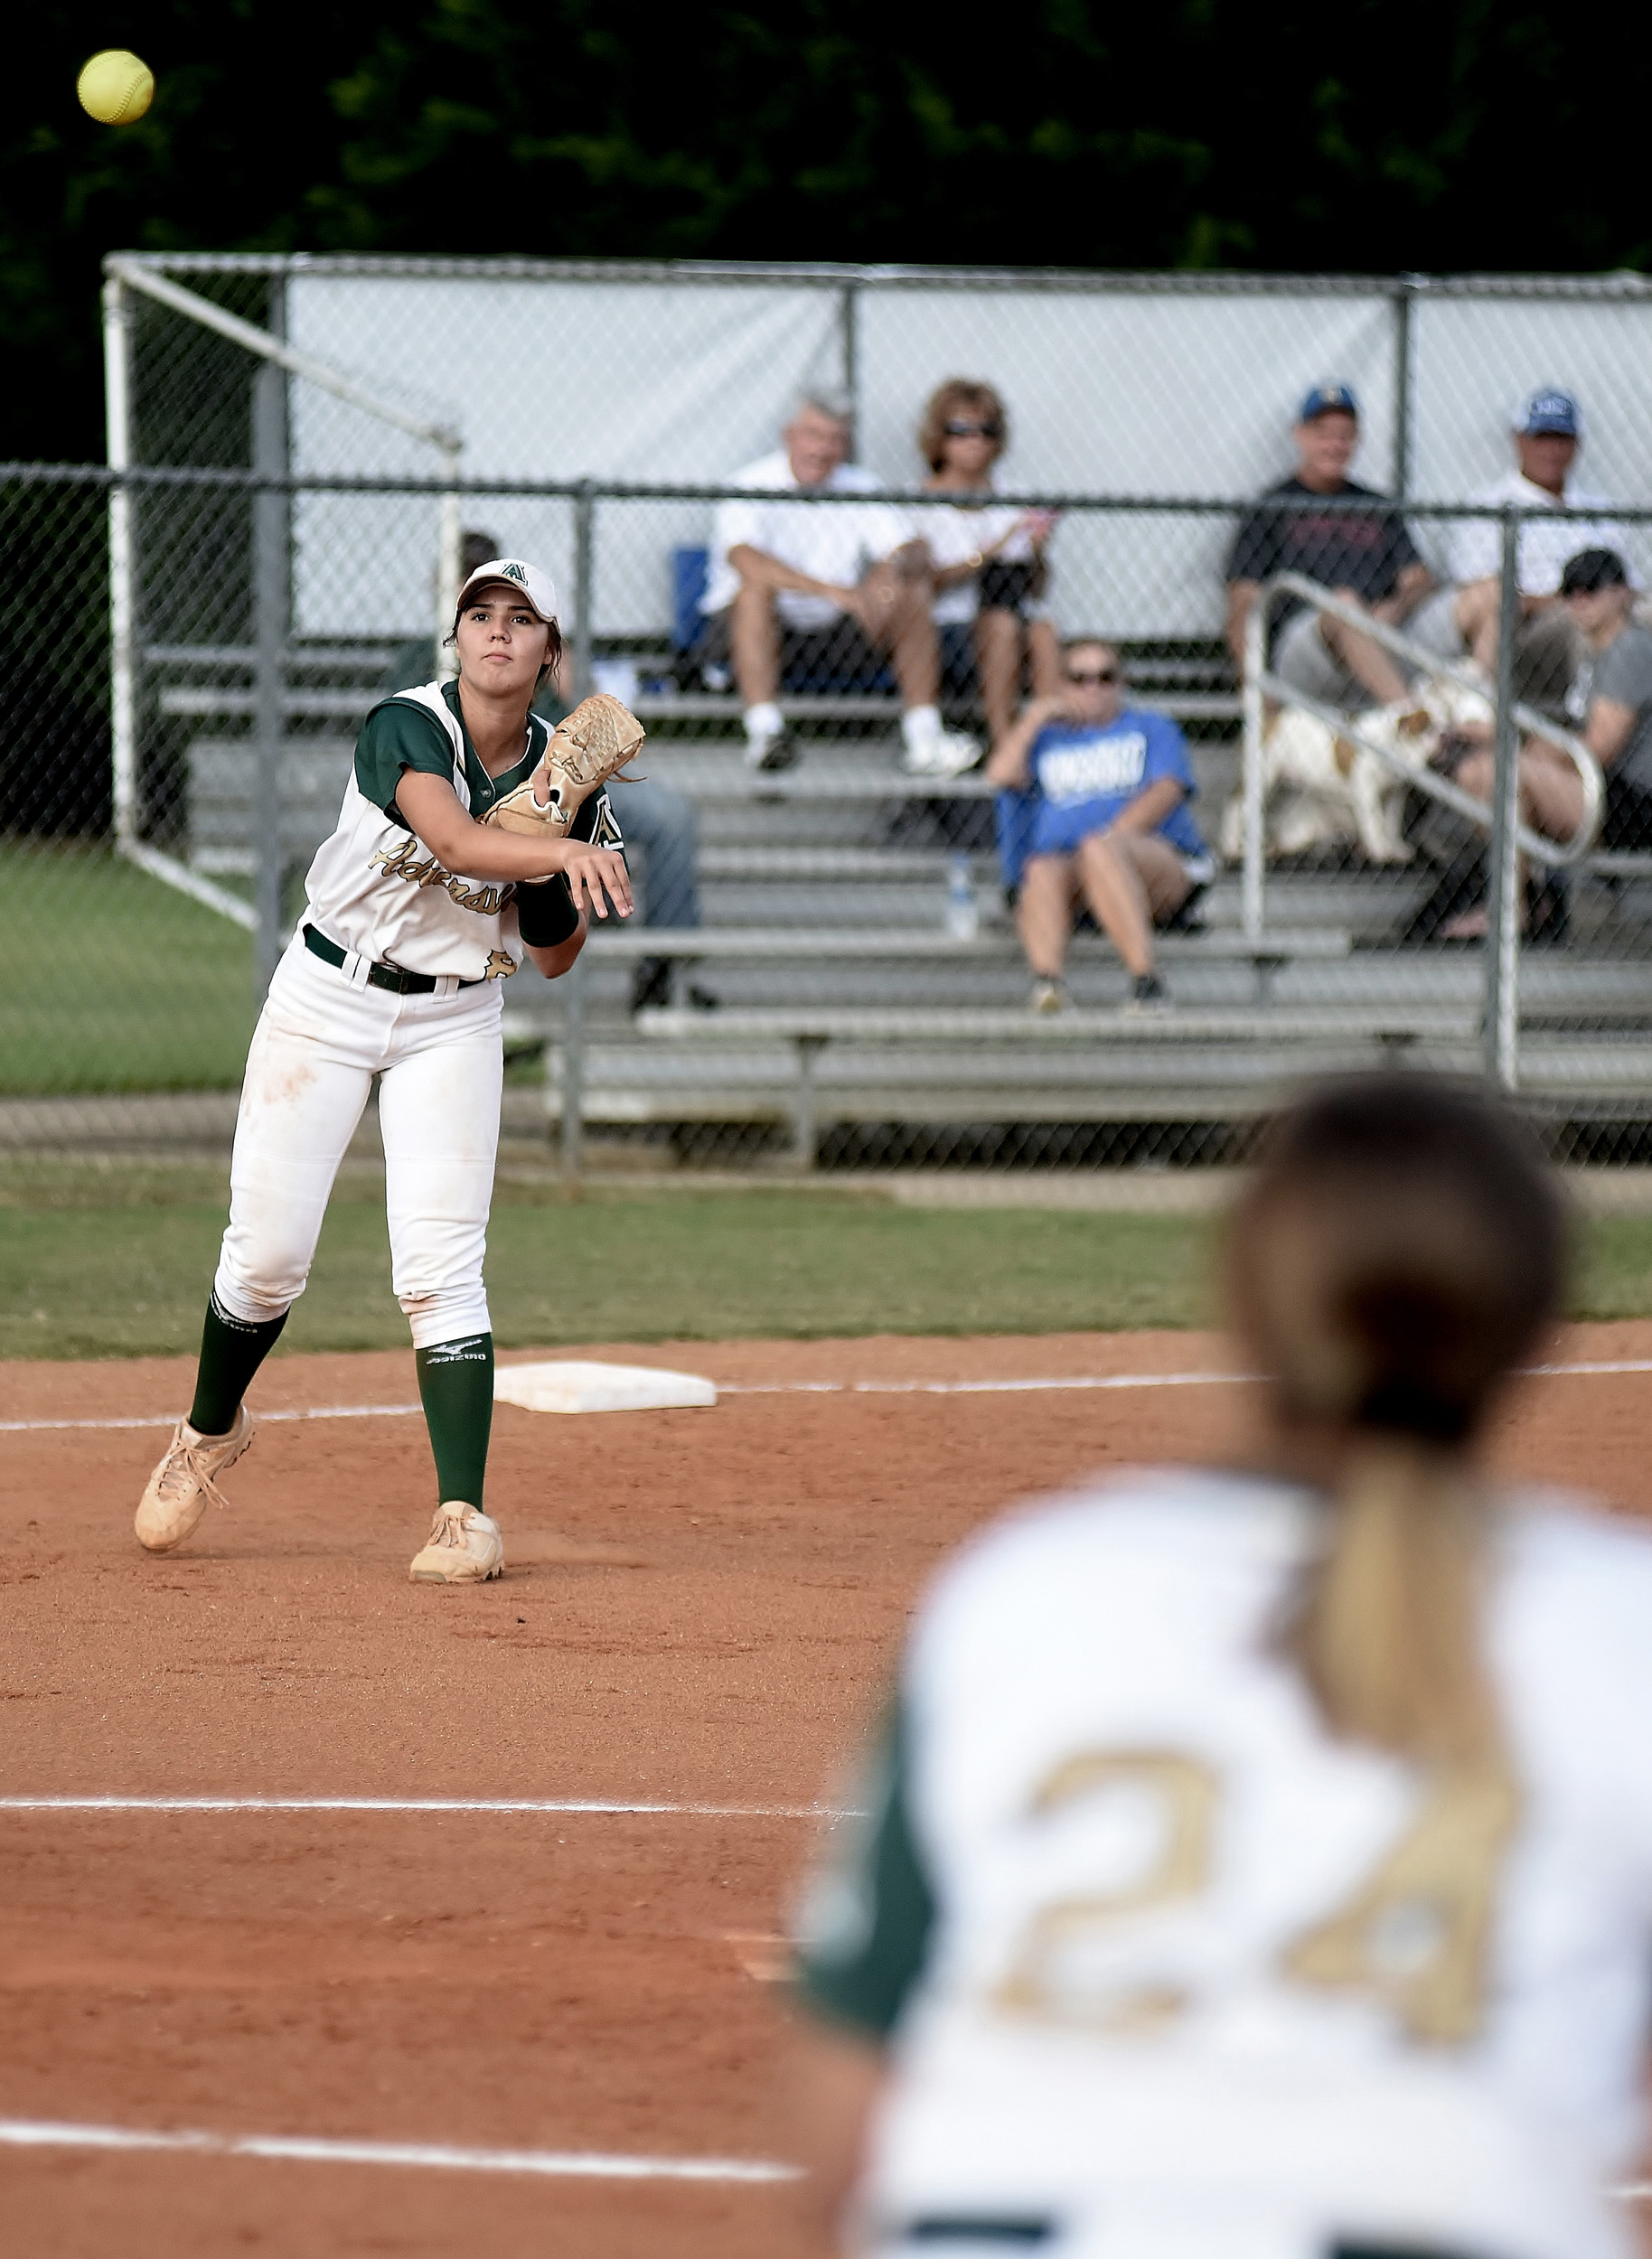 Adairsville's Sadye Johnson throws across the diamond from third base to get a Ringgold runner at first.